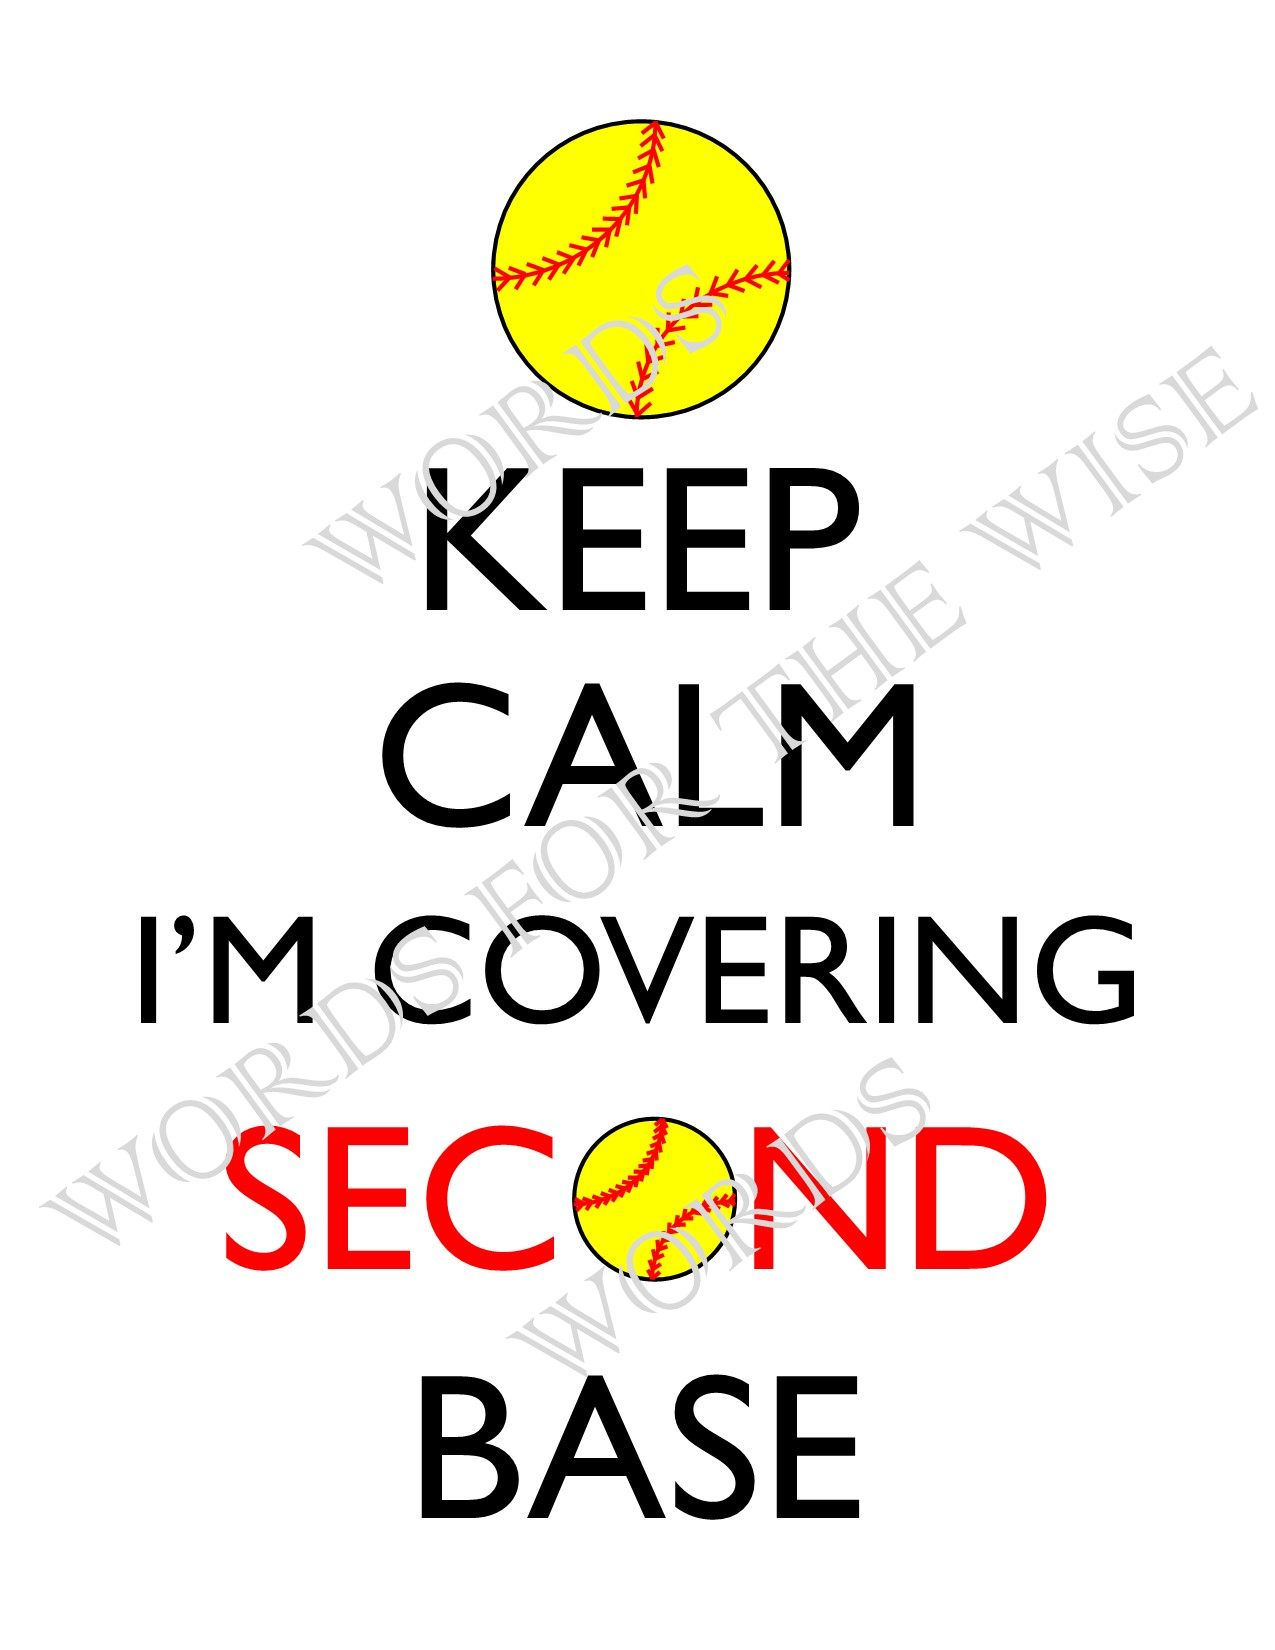 What is second base